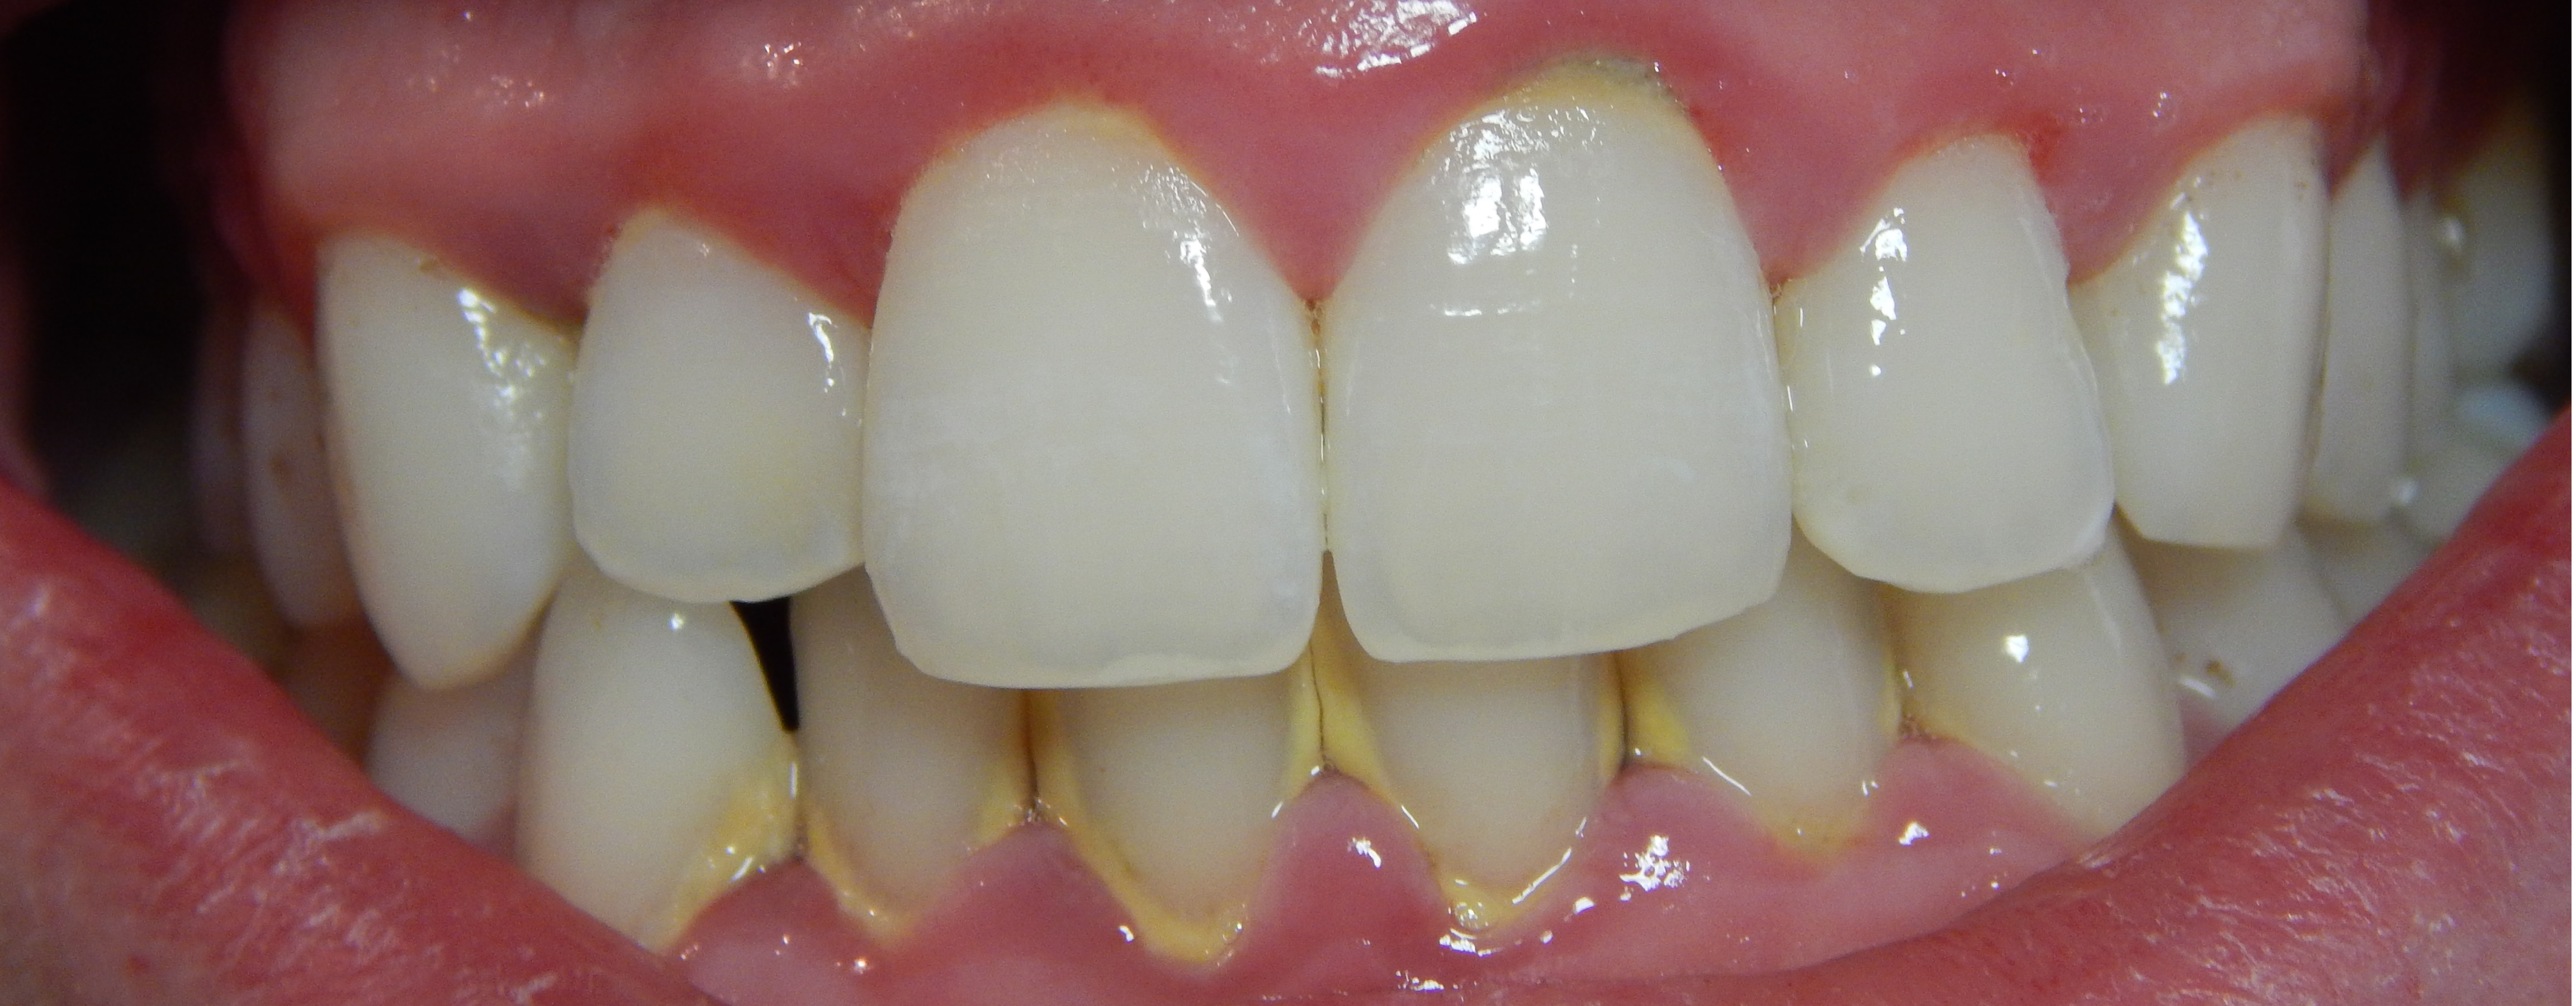 gingivitis-before